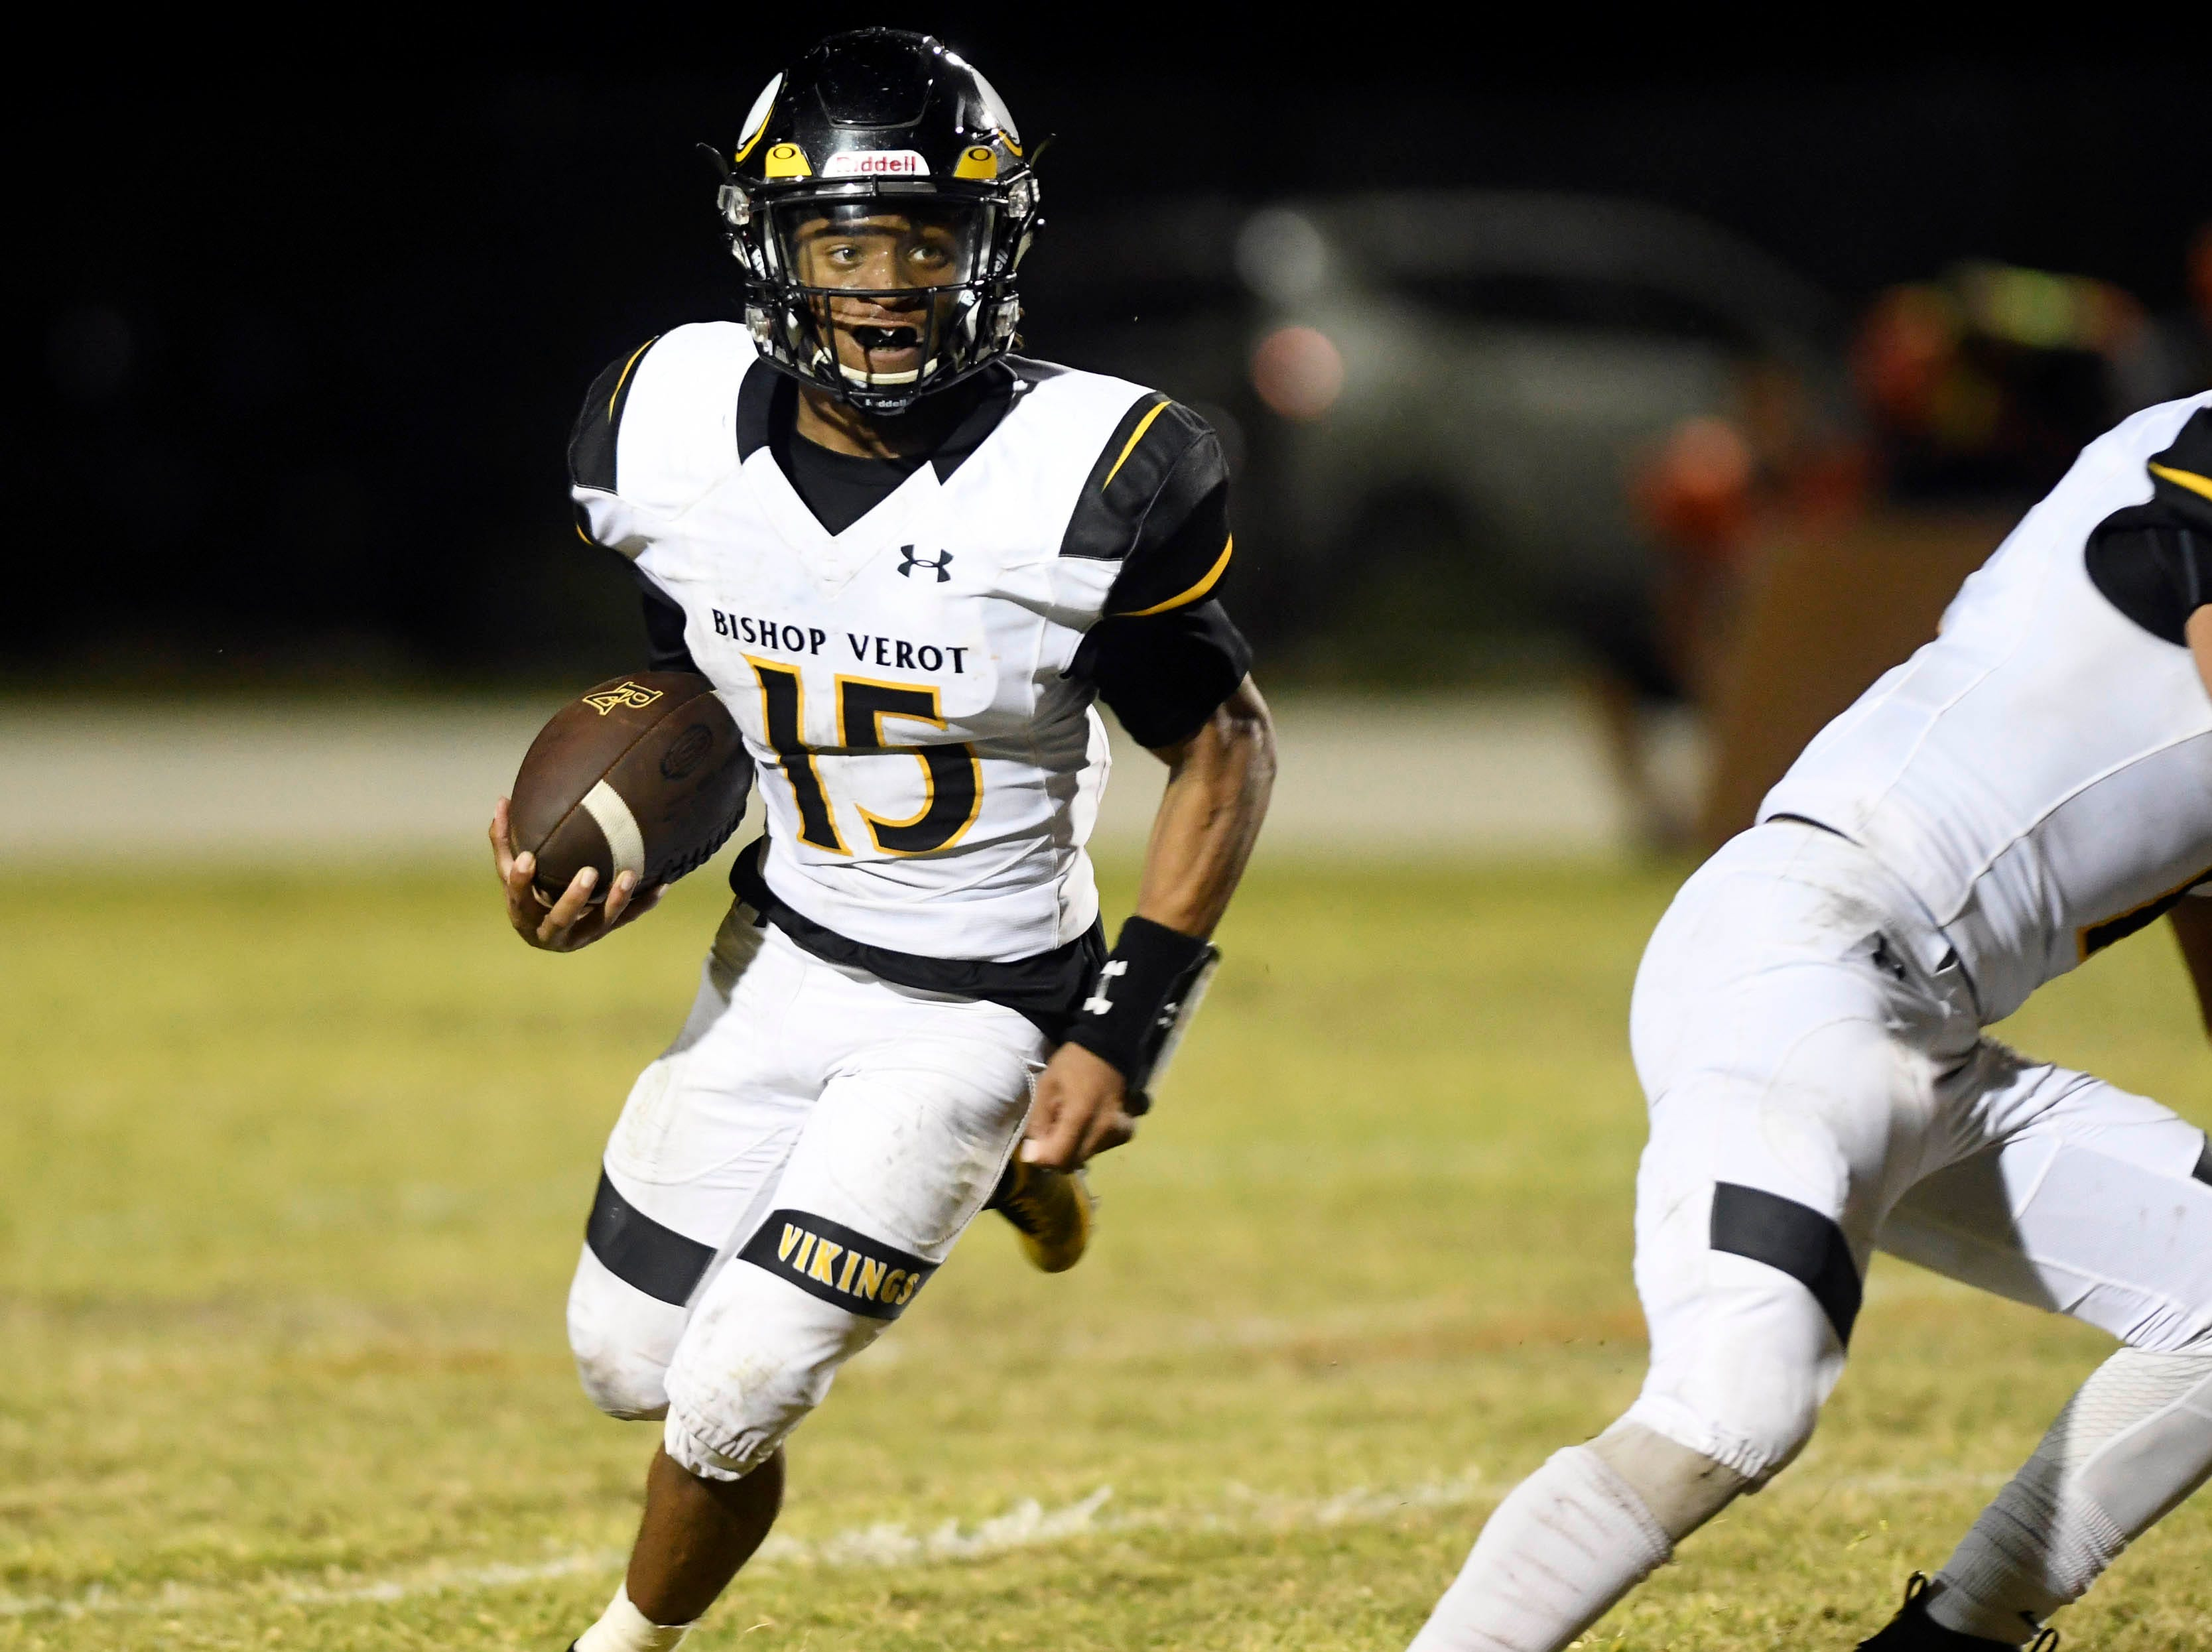 Teqoun Chatman of Bishop Verot runs the ball during Friday's game against Cocoa.